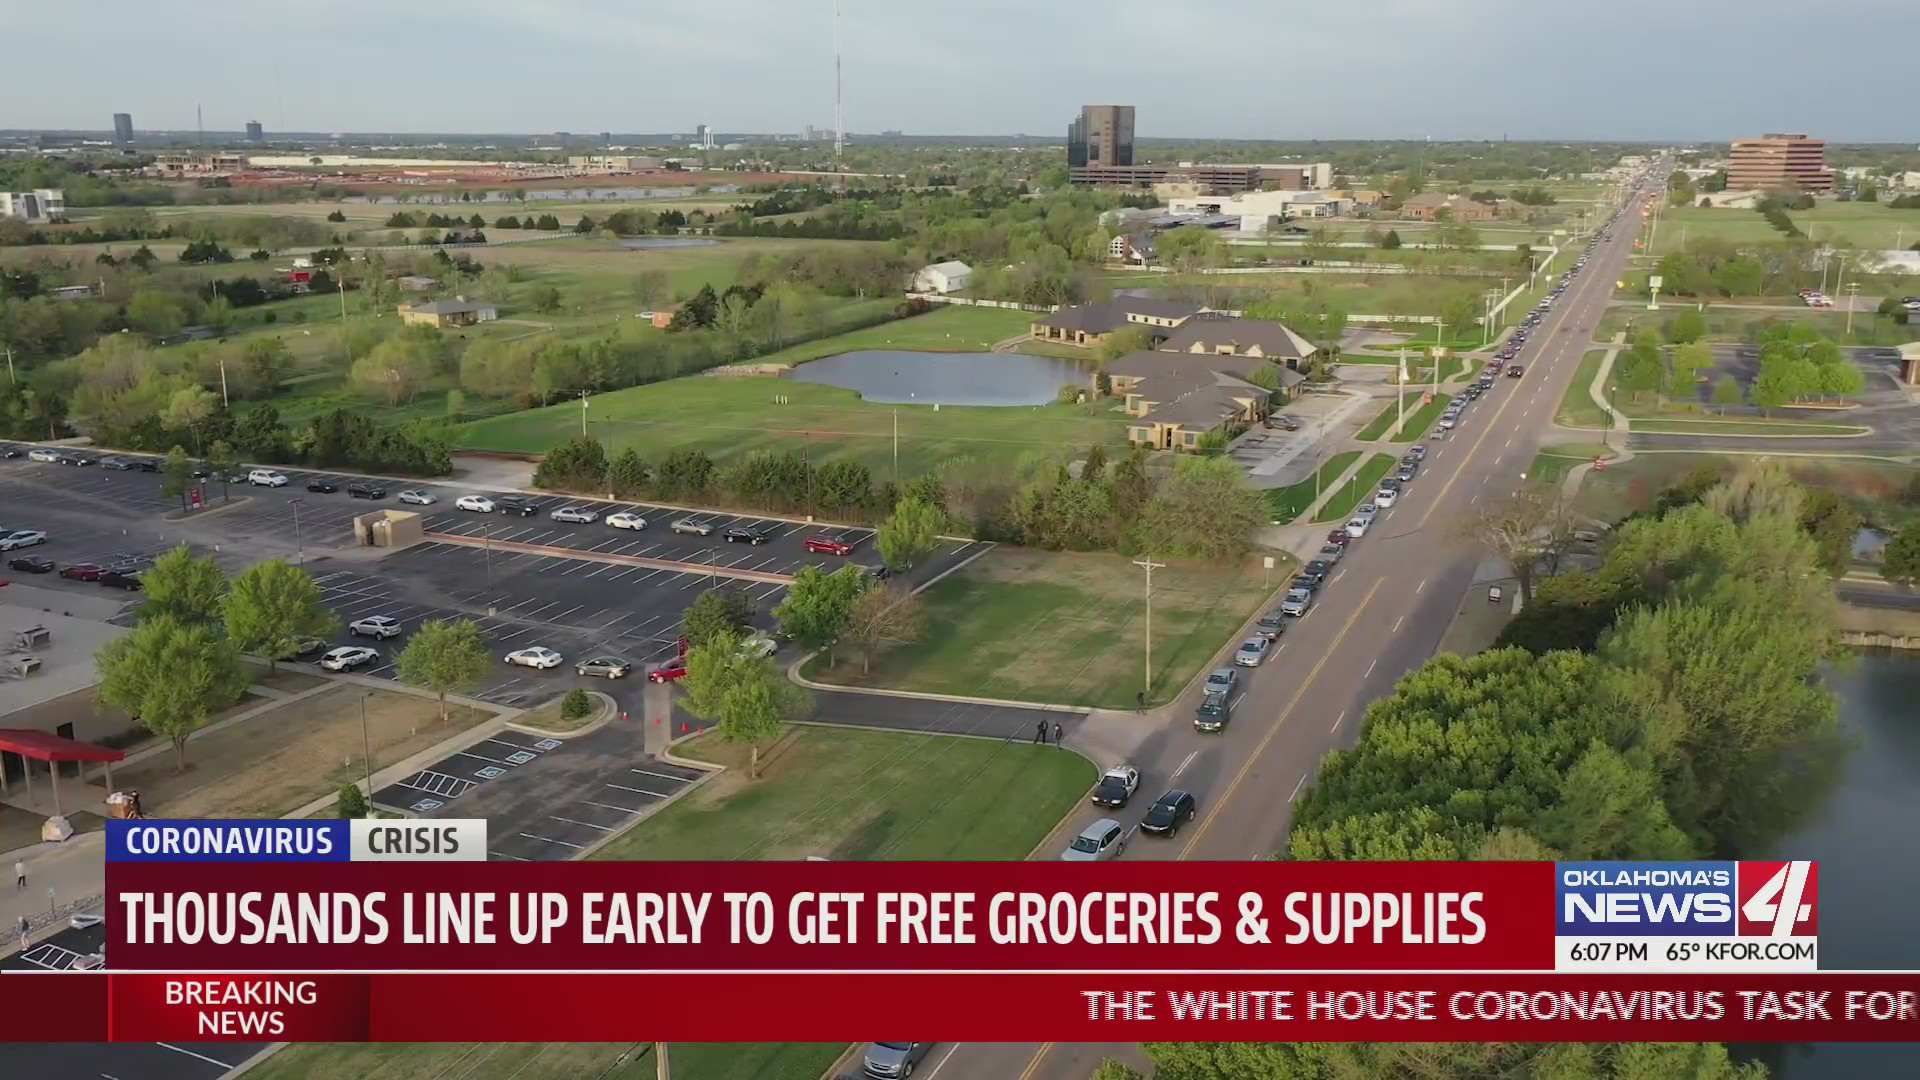 cars for miles lined up for free groceries